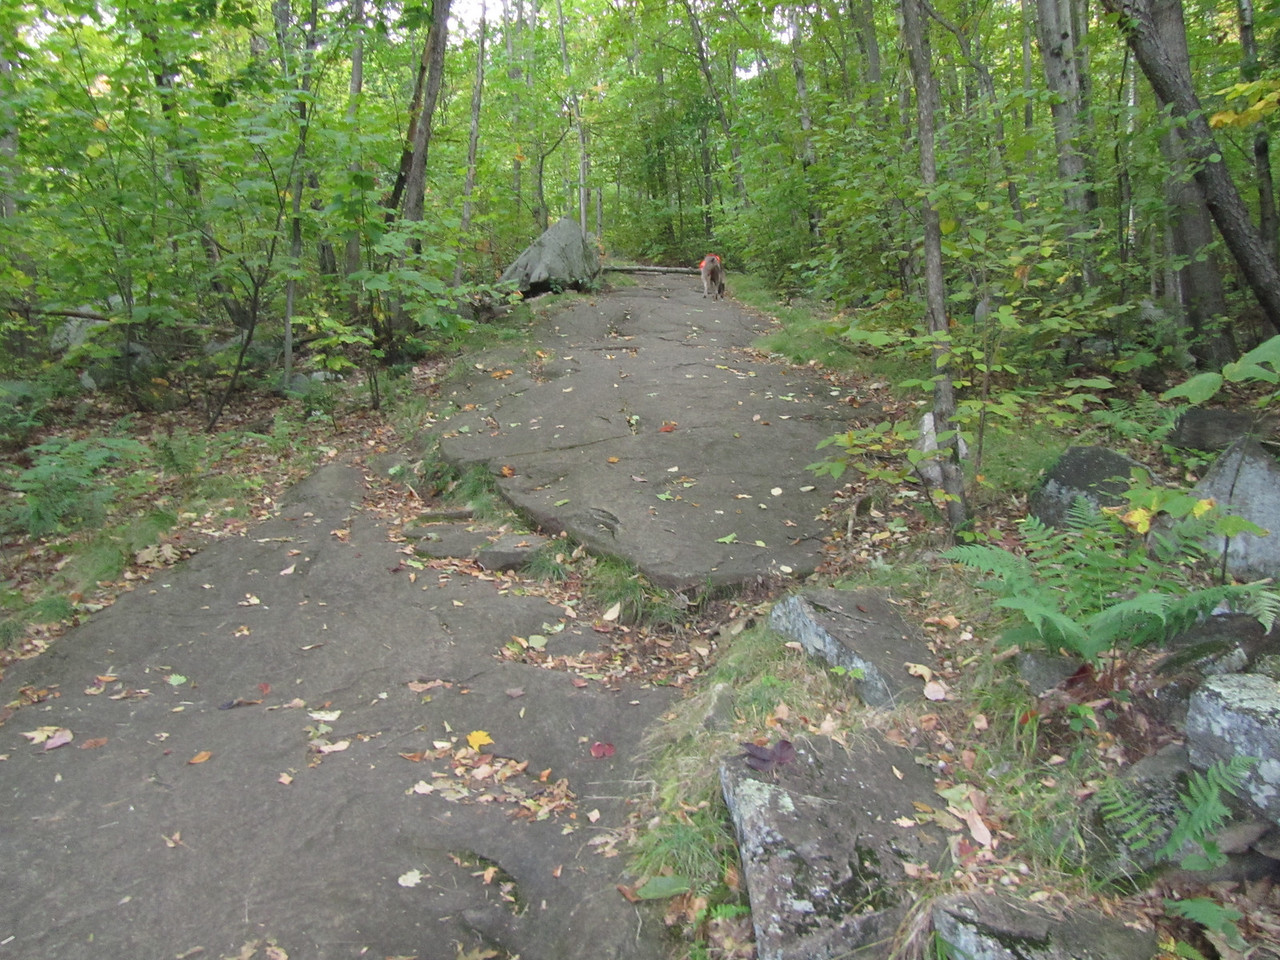 Again, the rock face trail. Only thing that would make this more difficult is some marbles.